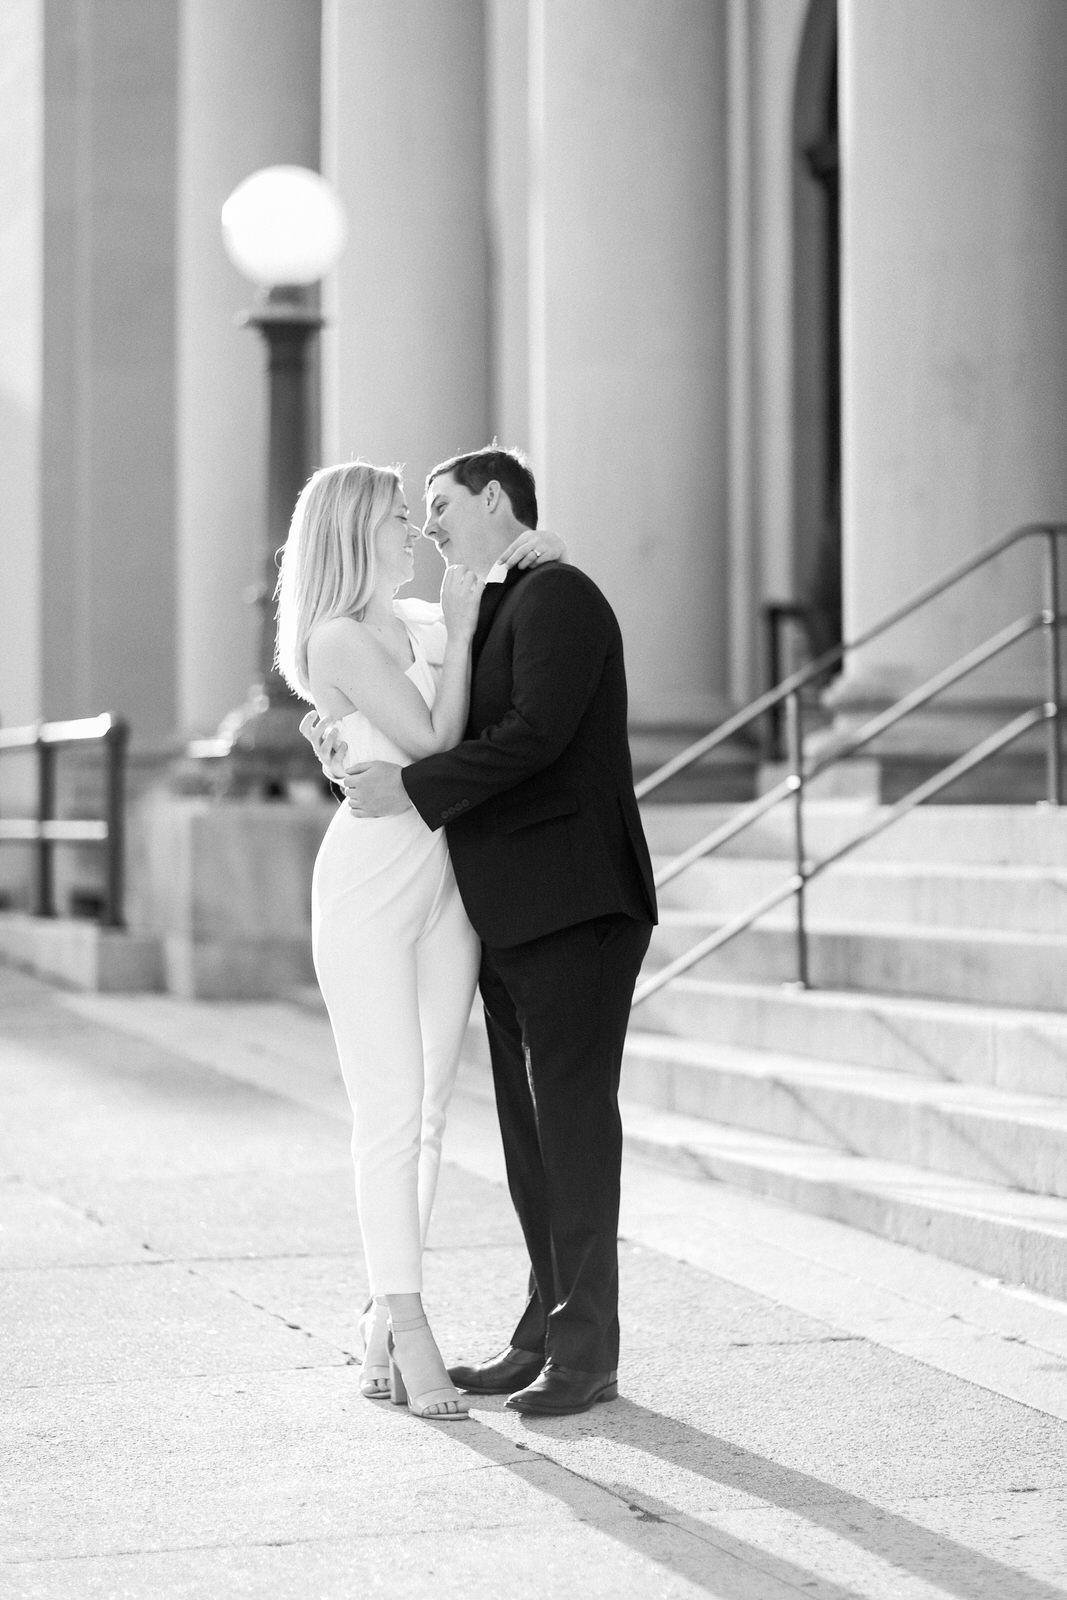 DC Wedding photographer photographs a stylish and classic couple during their downtown engagement photography session before their modern wedding.